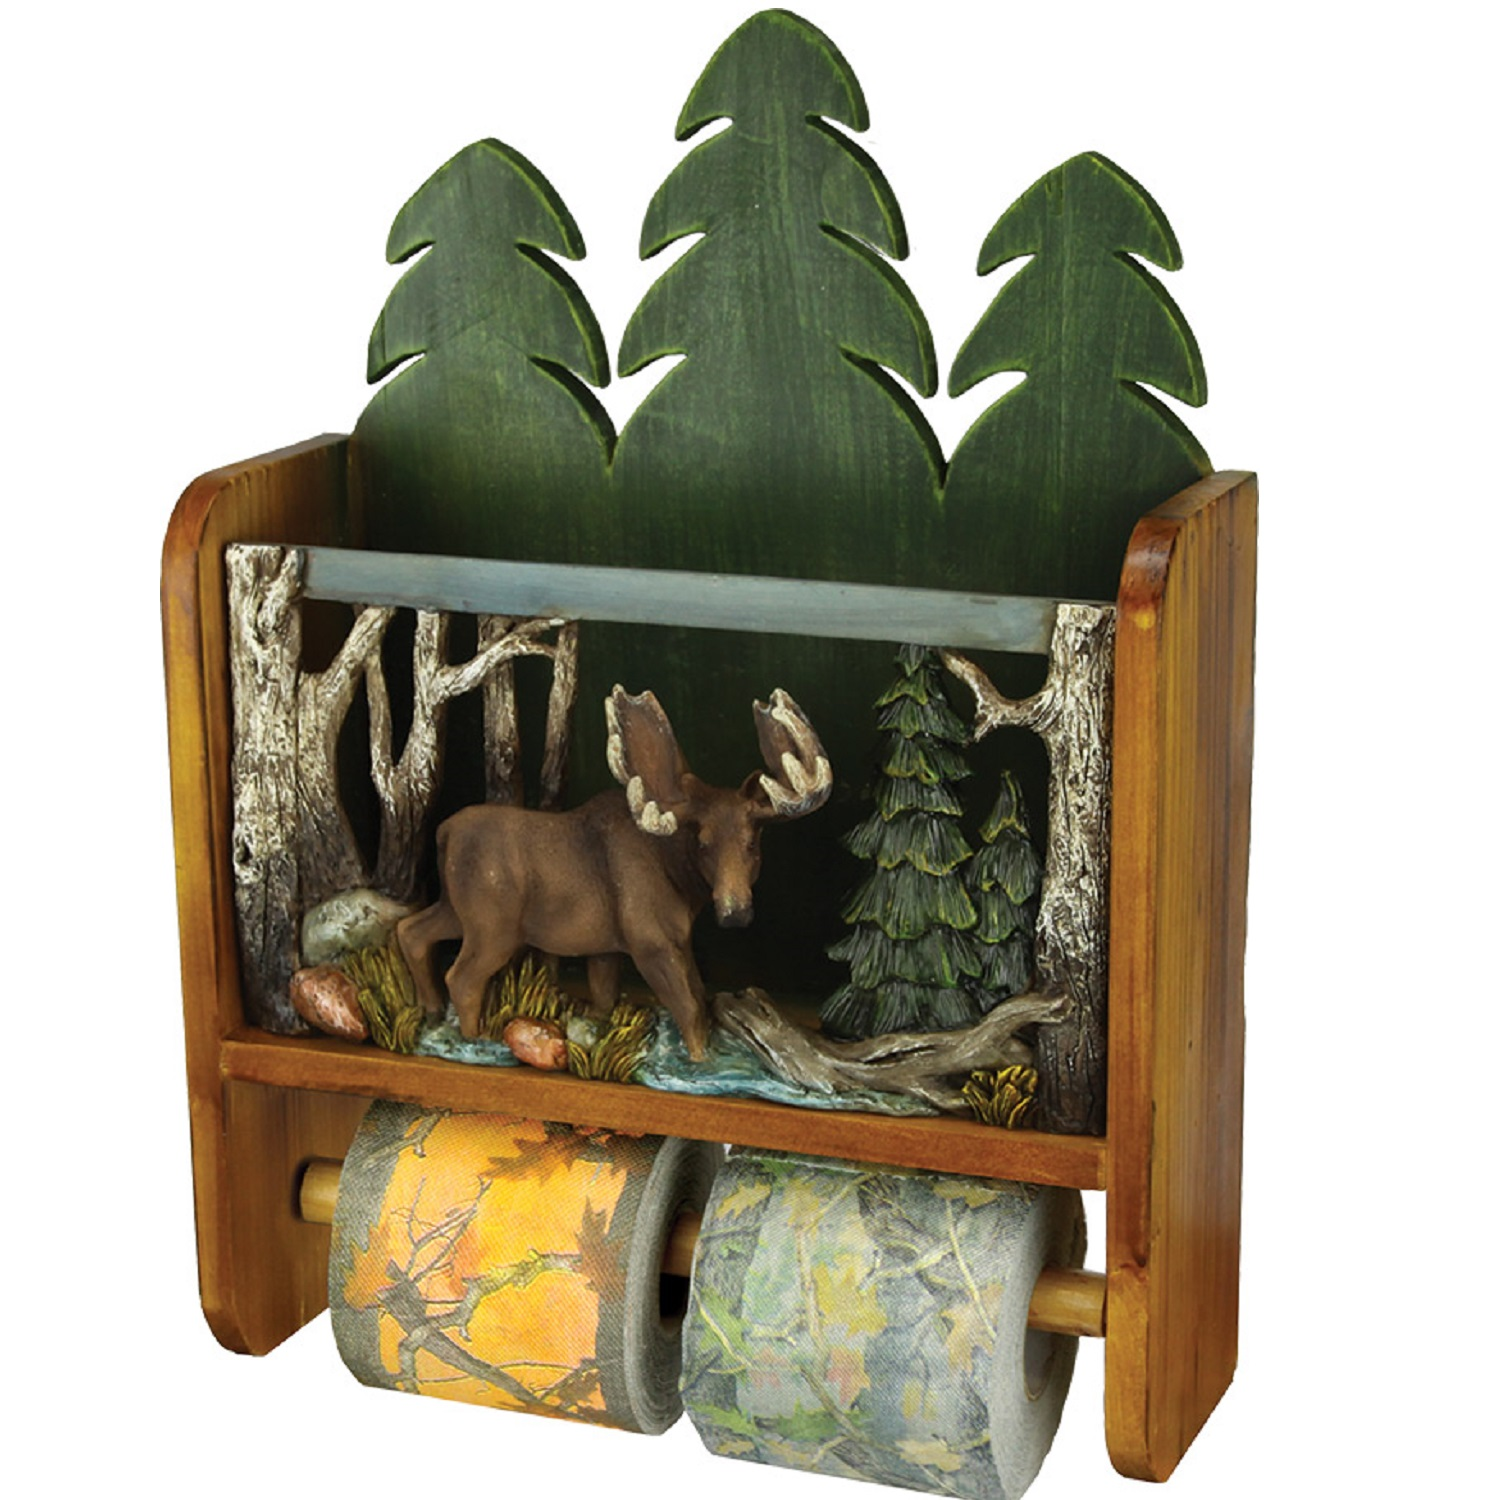 Animal Toilet Paper Holder Stand Rivers Edge Moose Magazine Rack Toilet Paper Holder